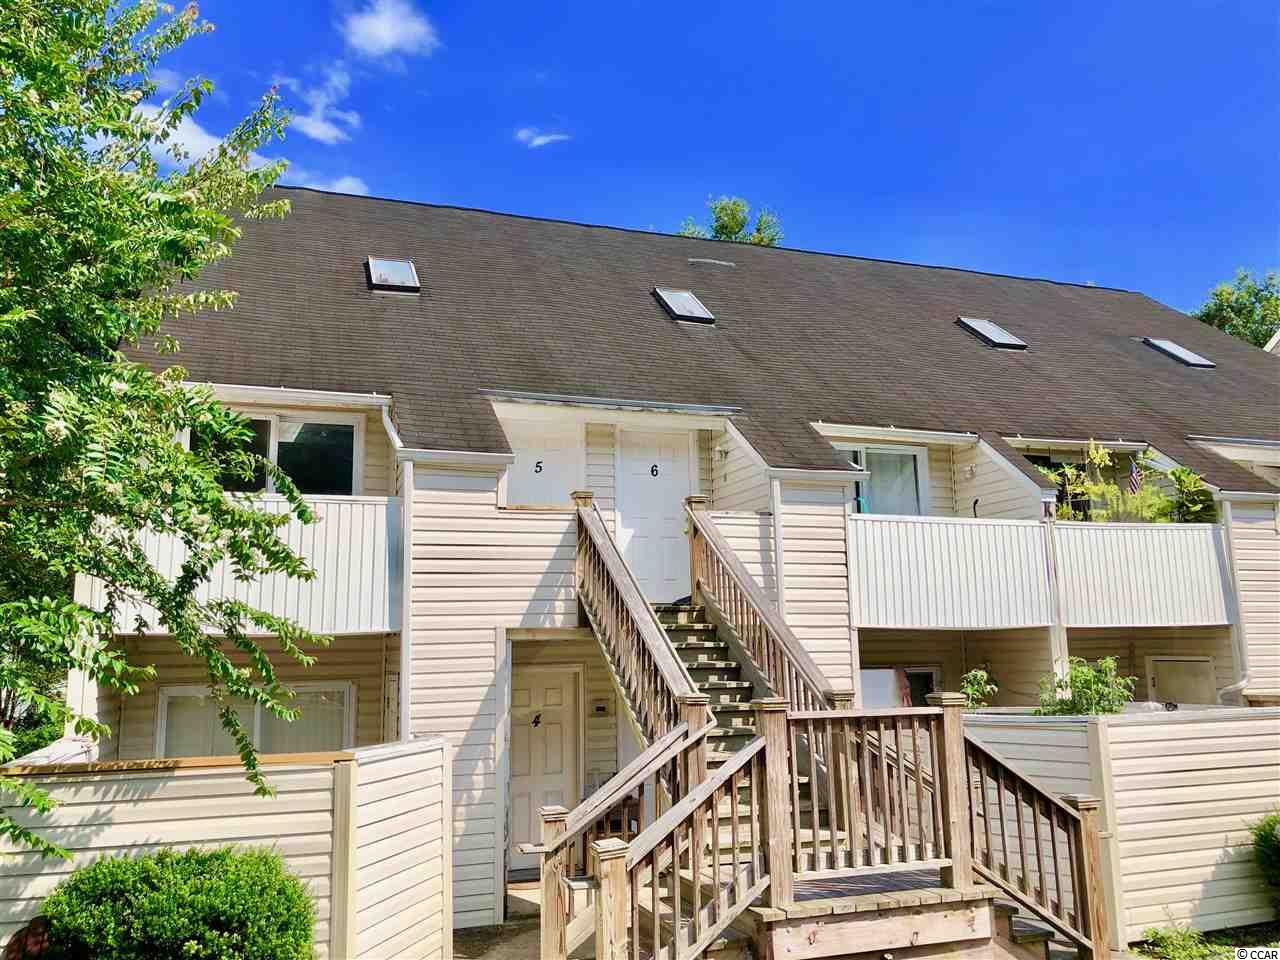 What a great opportunity! Located in the heart of Garden City, this end unit condo is just a golf cart ride away from the beach. Featuring 2 bedrooms and 2 baths, this townhouse styled home will easily accommodate year-round living! There is a size-able living room which opens up to the kitchen and comes with plenty of natural light from the skylight above. The master bedroom on the first floor features a large walk-in closet, master bathroom, and its own private balcony. There is also a separate balcony off of the living area which offers outside storage and is perfect for your morning coffee. Upstairs, there is a spacious, loft styled bedroom which also features a walk-in closet and bathroom. The HVAC Heat Pump was replaced in April 2019, ceilings and walls were recently repainted, and the carpet in upstairs bedroom is new. Washer and dryer are also included. This is a great investment opportunity. Very rarely is there a vacancy in Cambridge Place so the rental potential is good. Located just south of Myrtle Beach and Surfside Beach, Garden City is a small beach community known for its friendly atmosphere, water sports, fishing, and crabbing. The Garden City Pier is extremely popular and is consistently praised for its live entertainment. Don't miss out on this opportunity! Schedule a showing today!